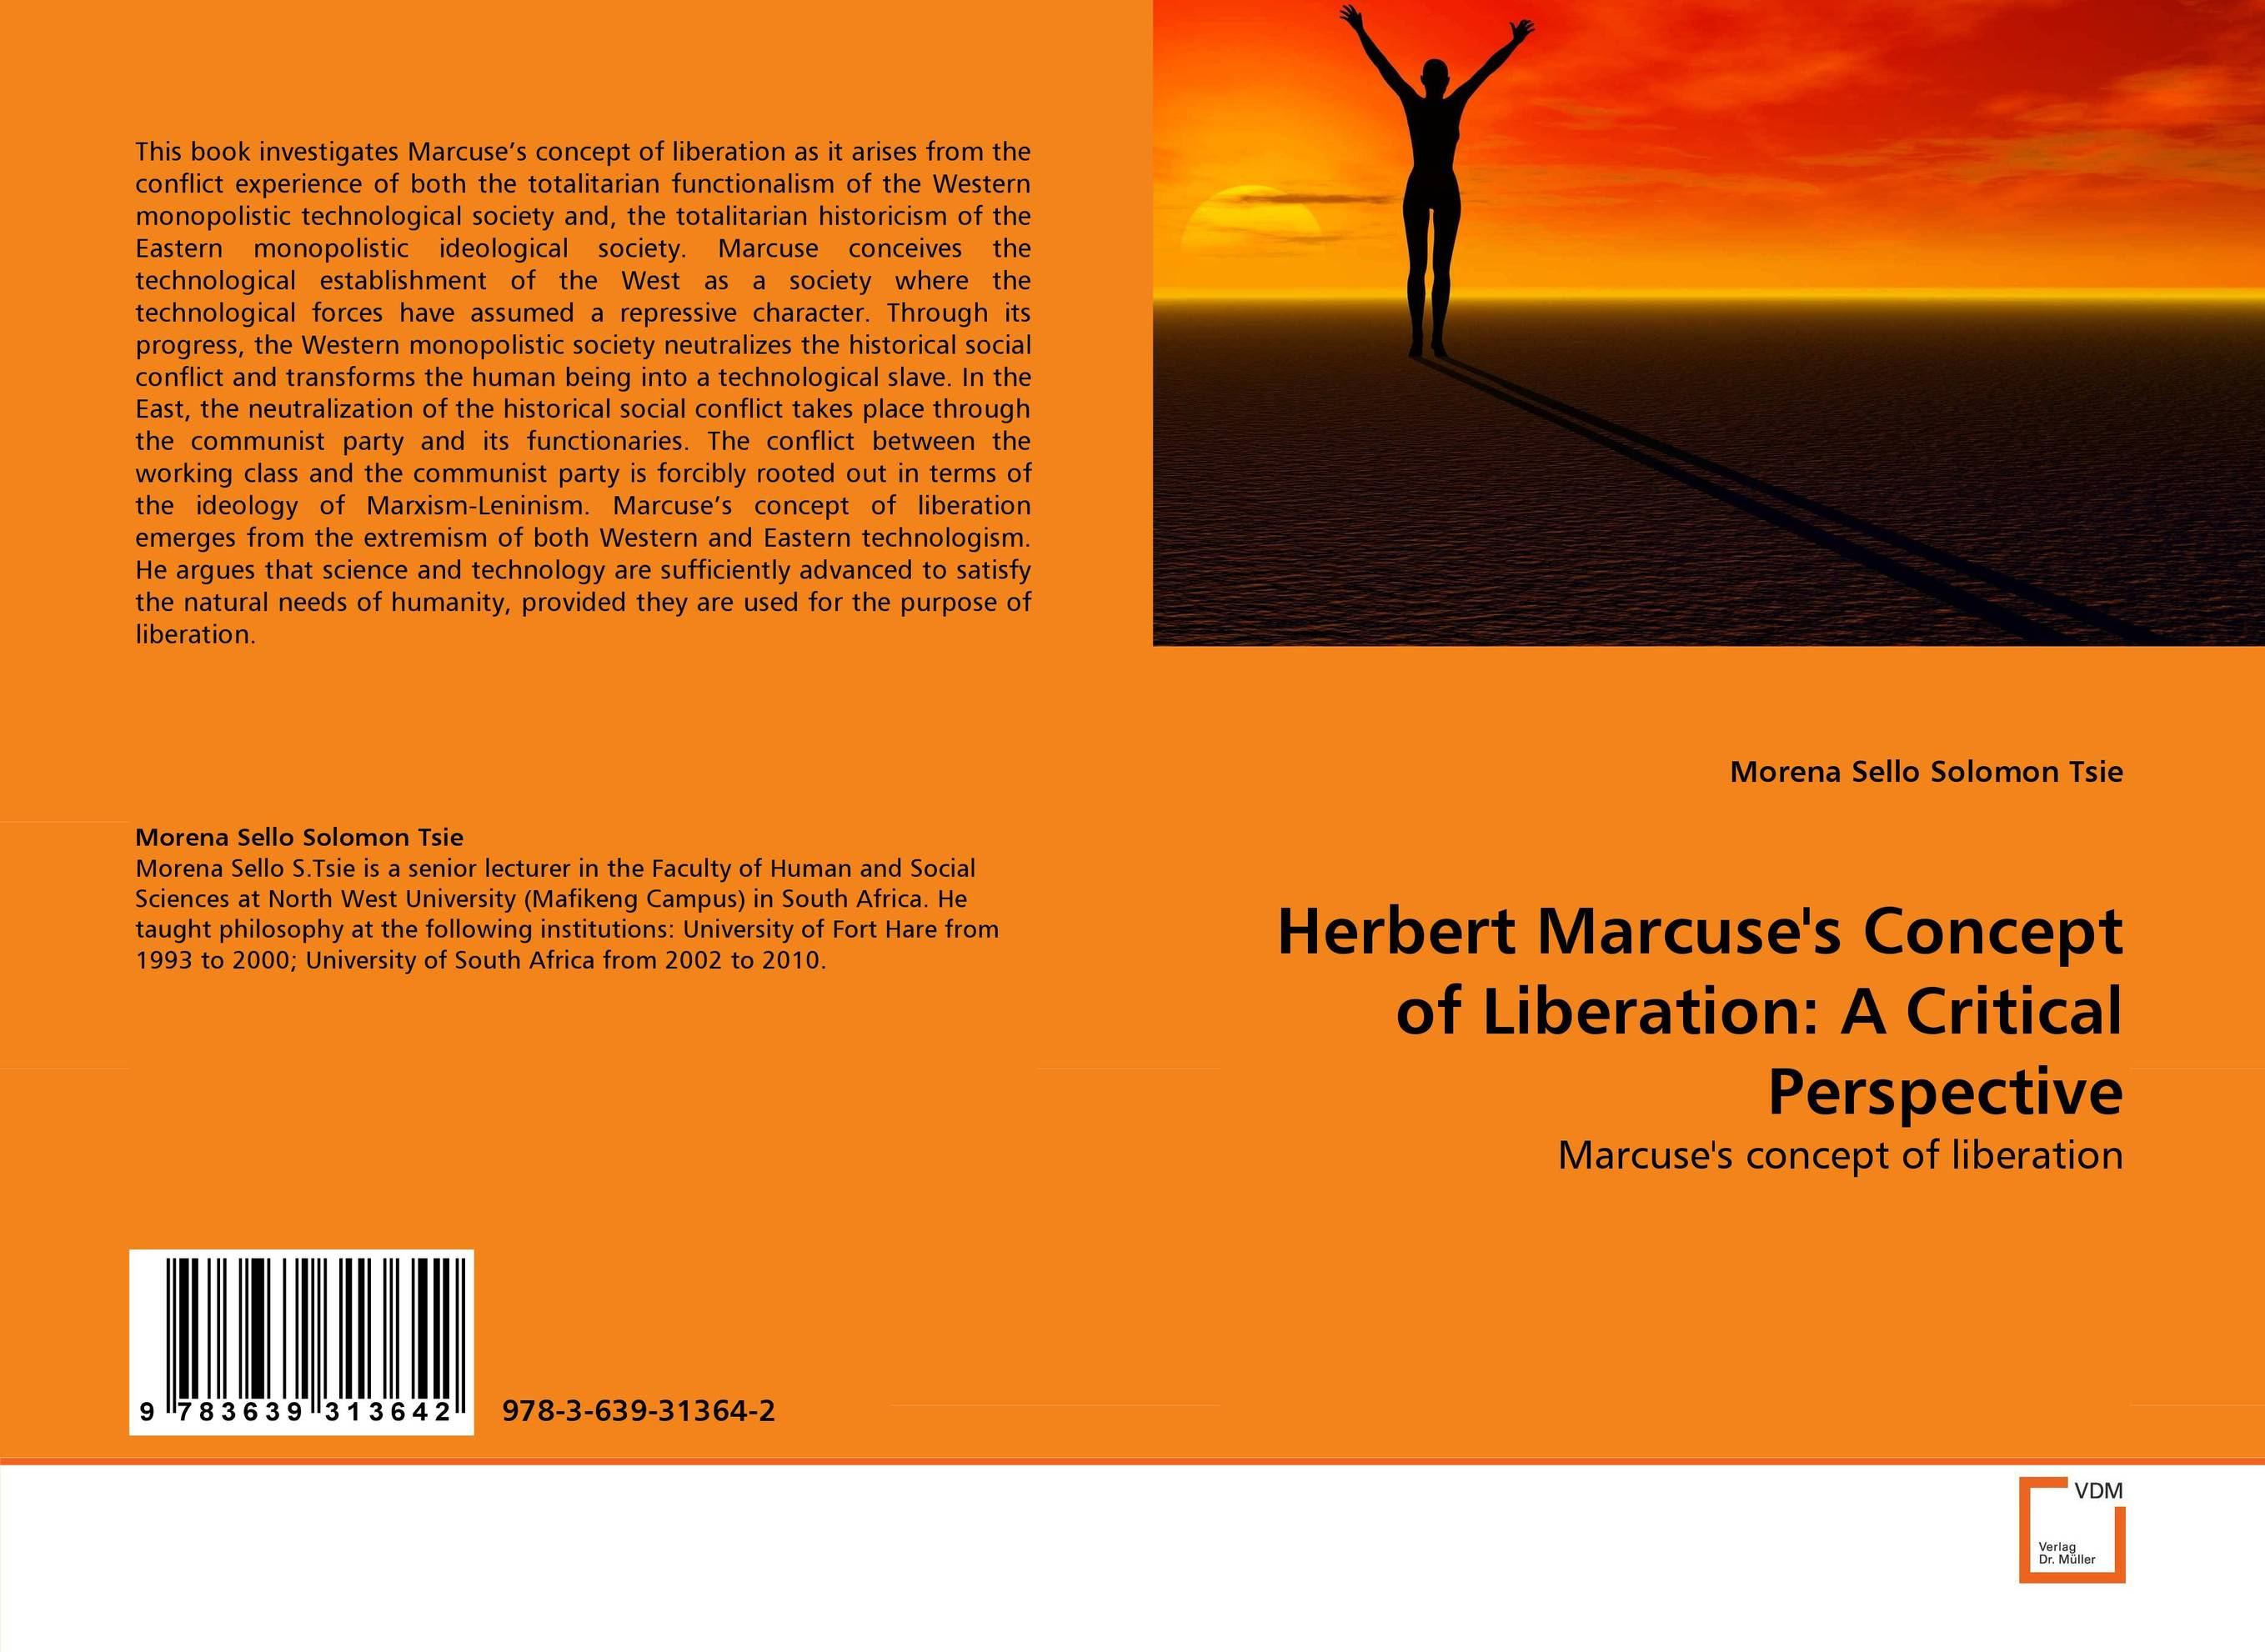 Herbert Marcuse''s Concept of Liberation: A Critical Perspective voluntary associations in tsarist russia – science patriotism and civil society